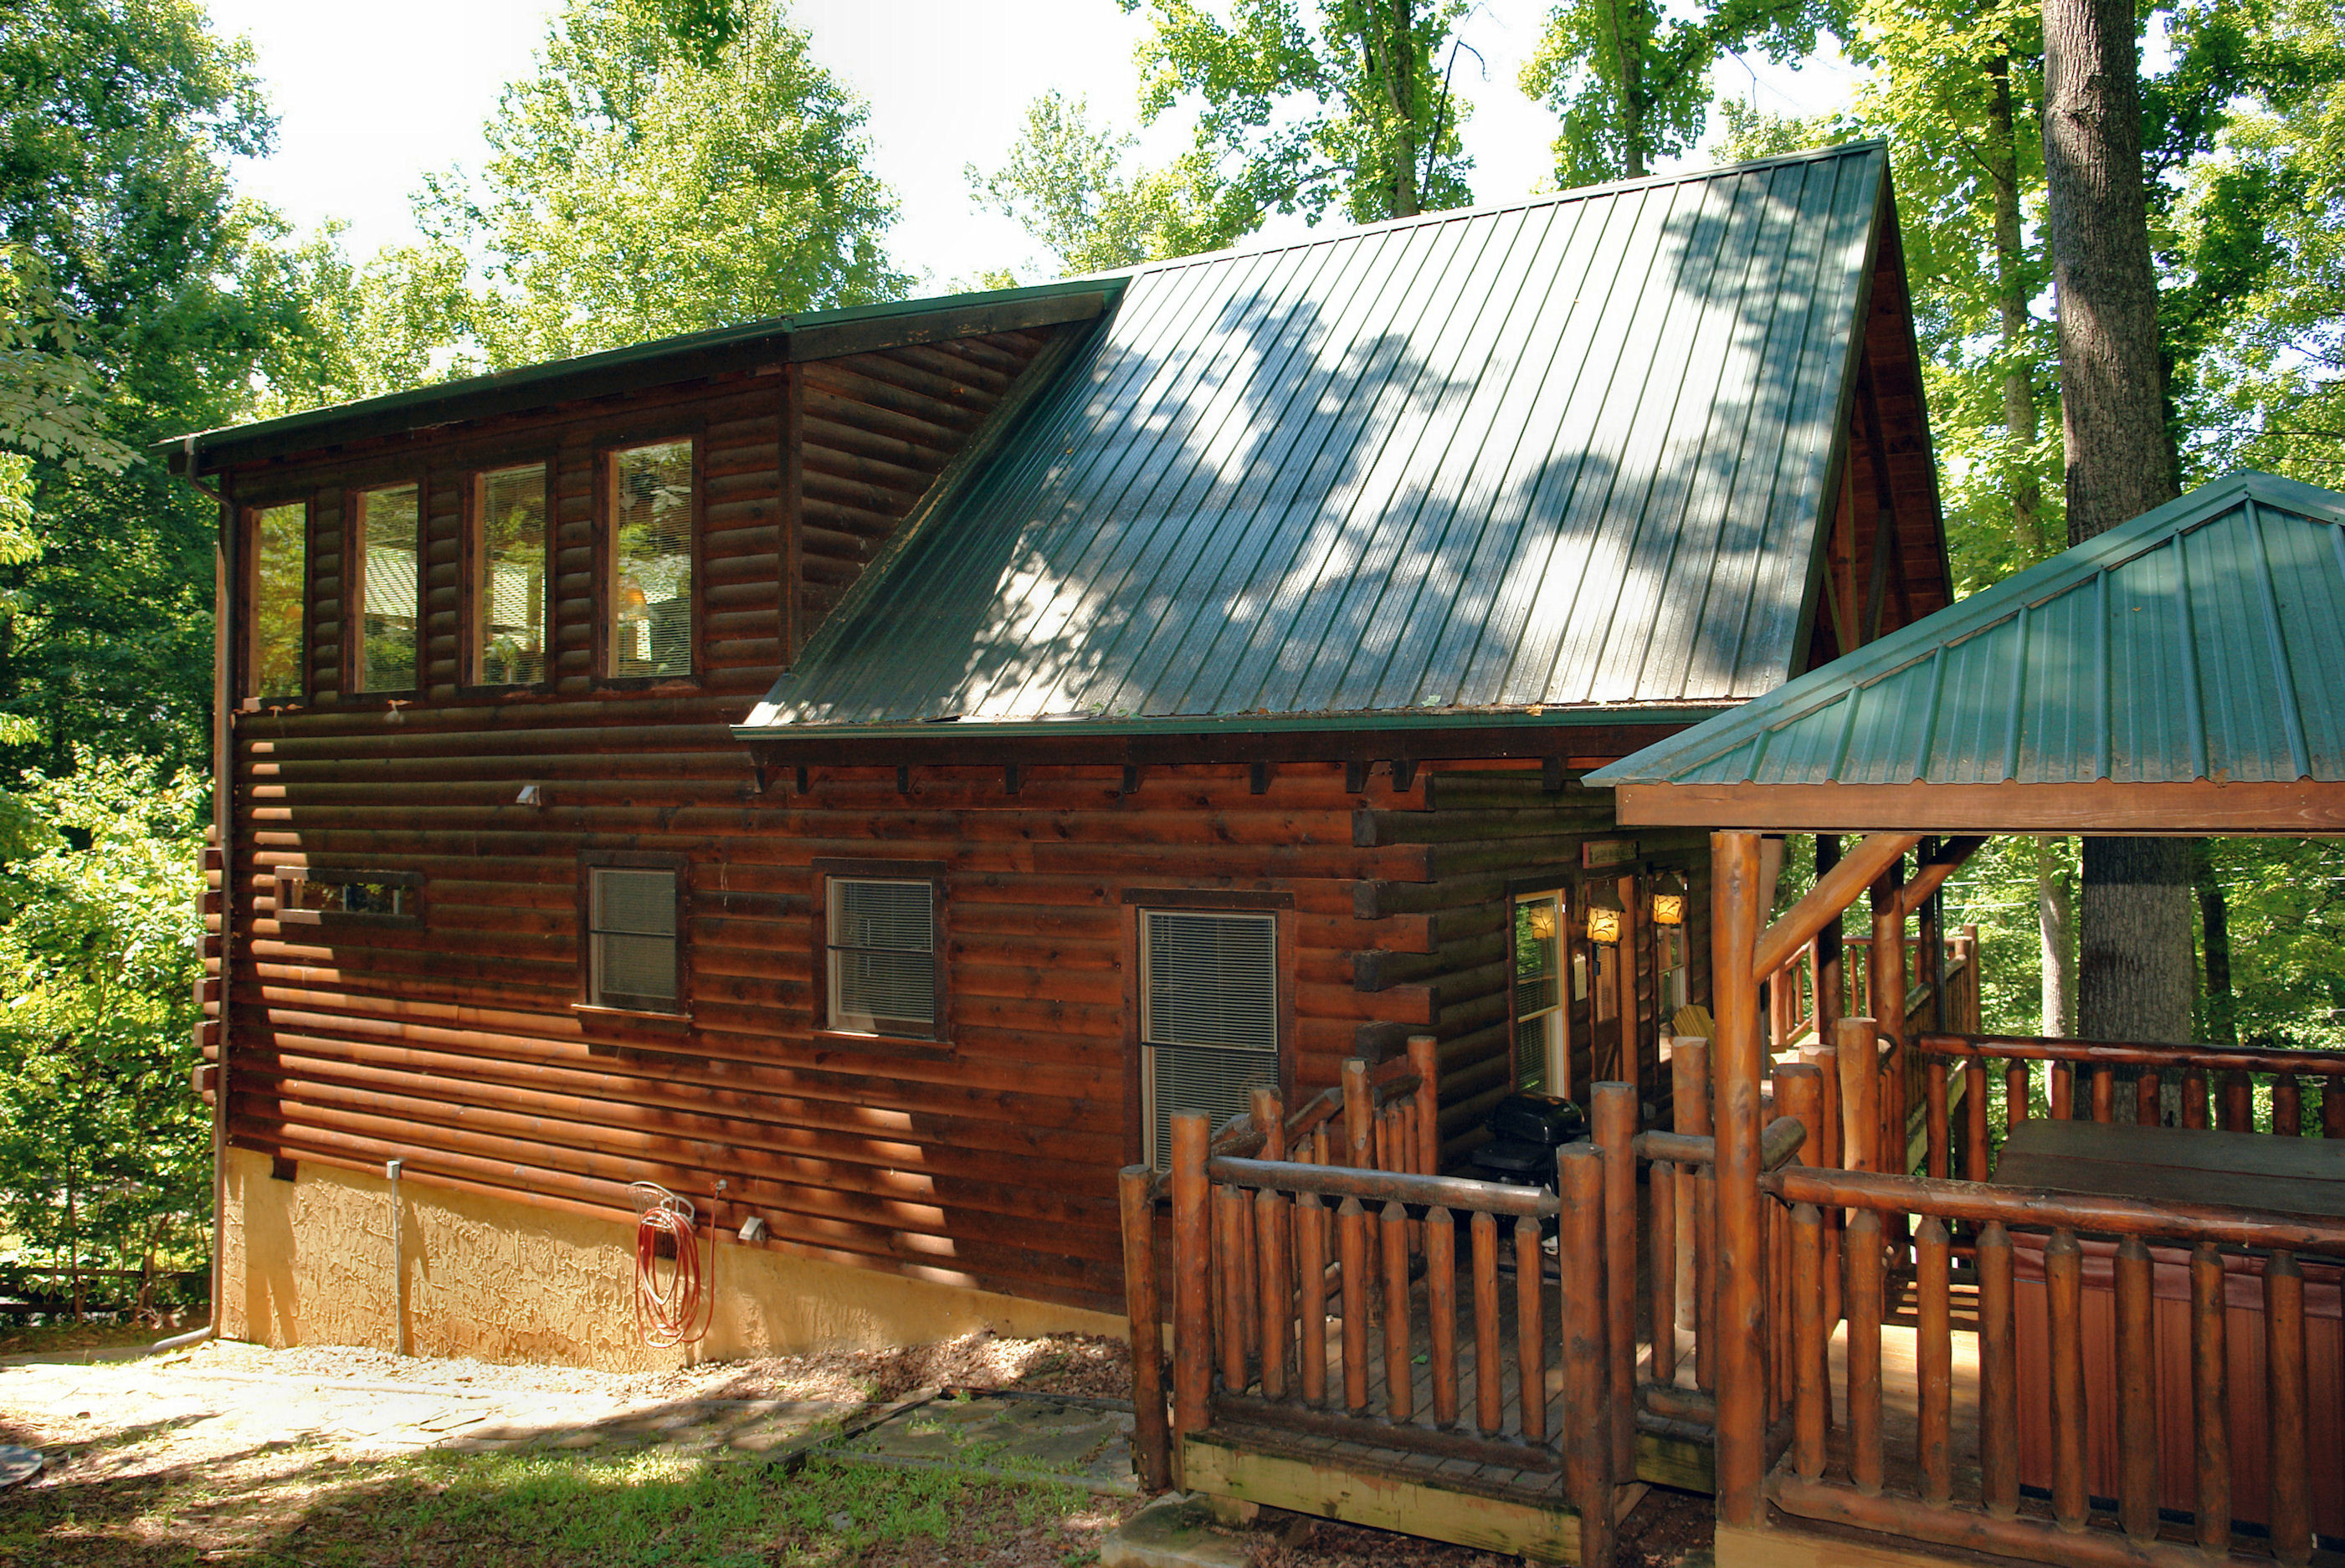 home rental tn near modern in on acres cabins bg nashville vacation tennesse vacationhomerental cabin log